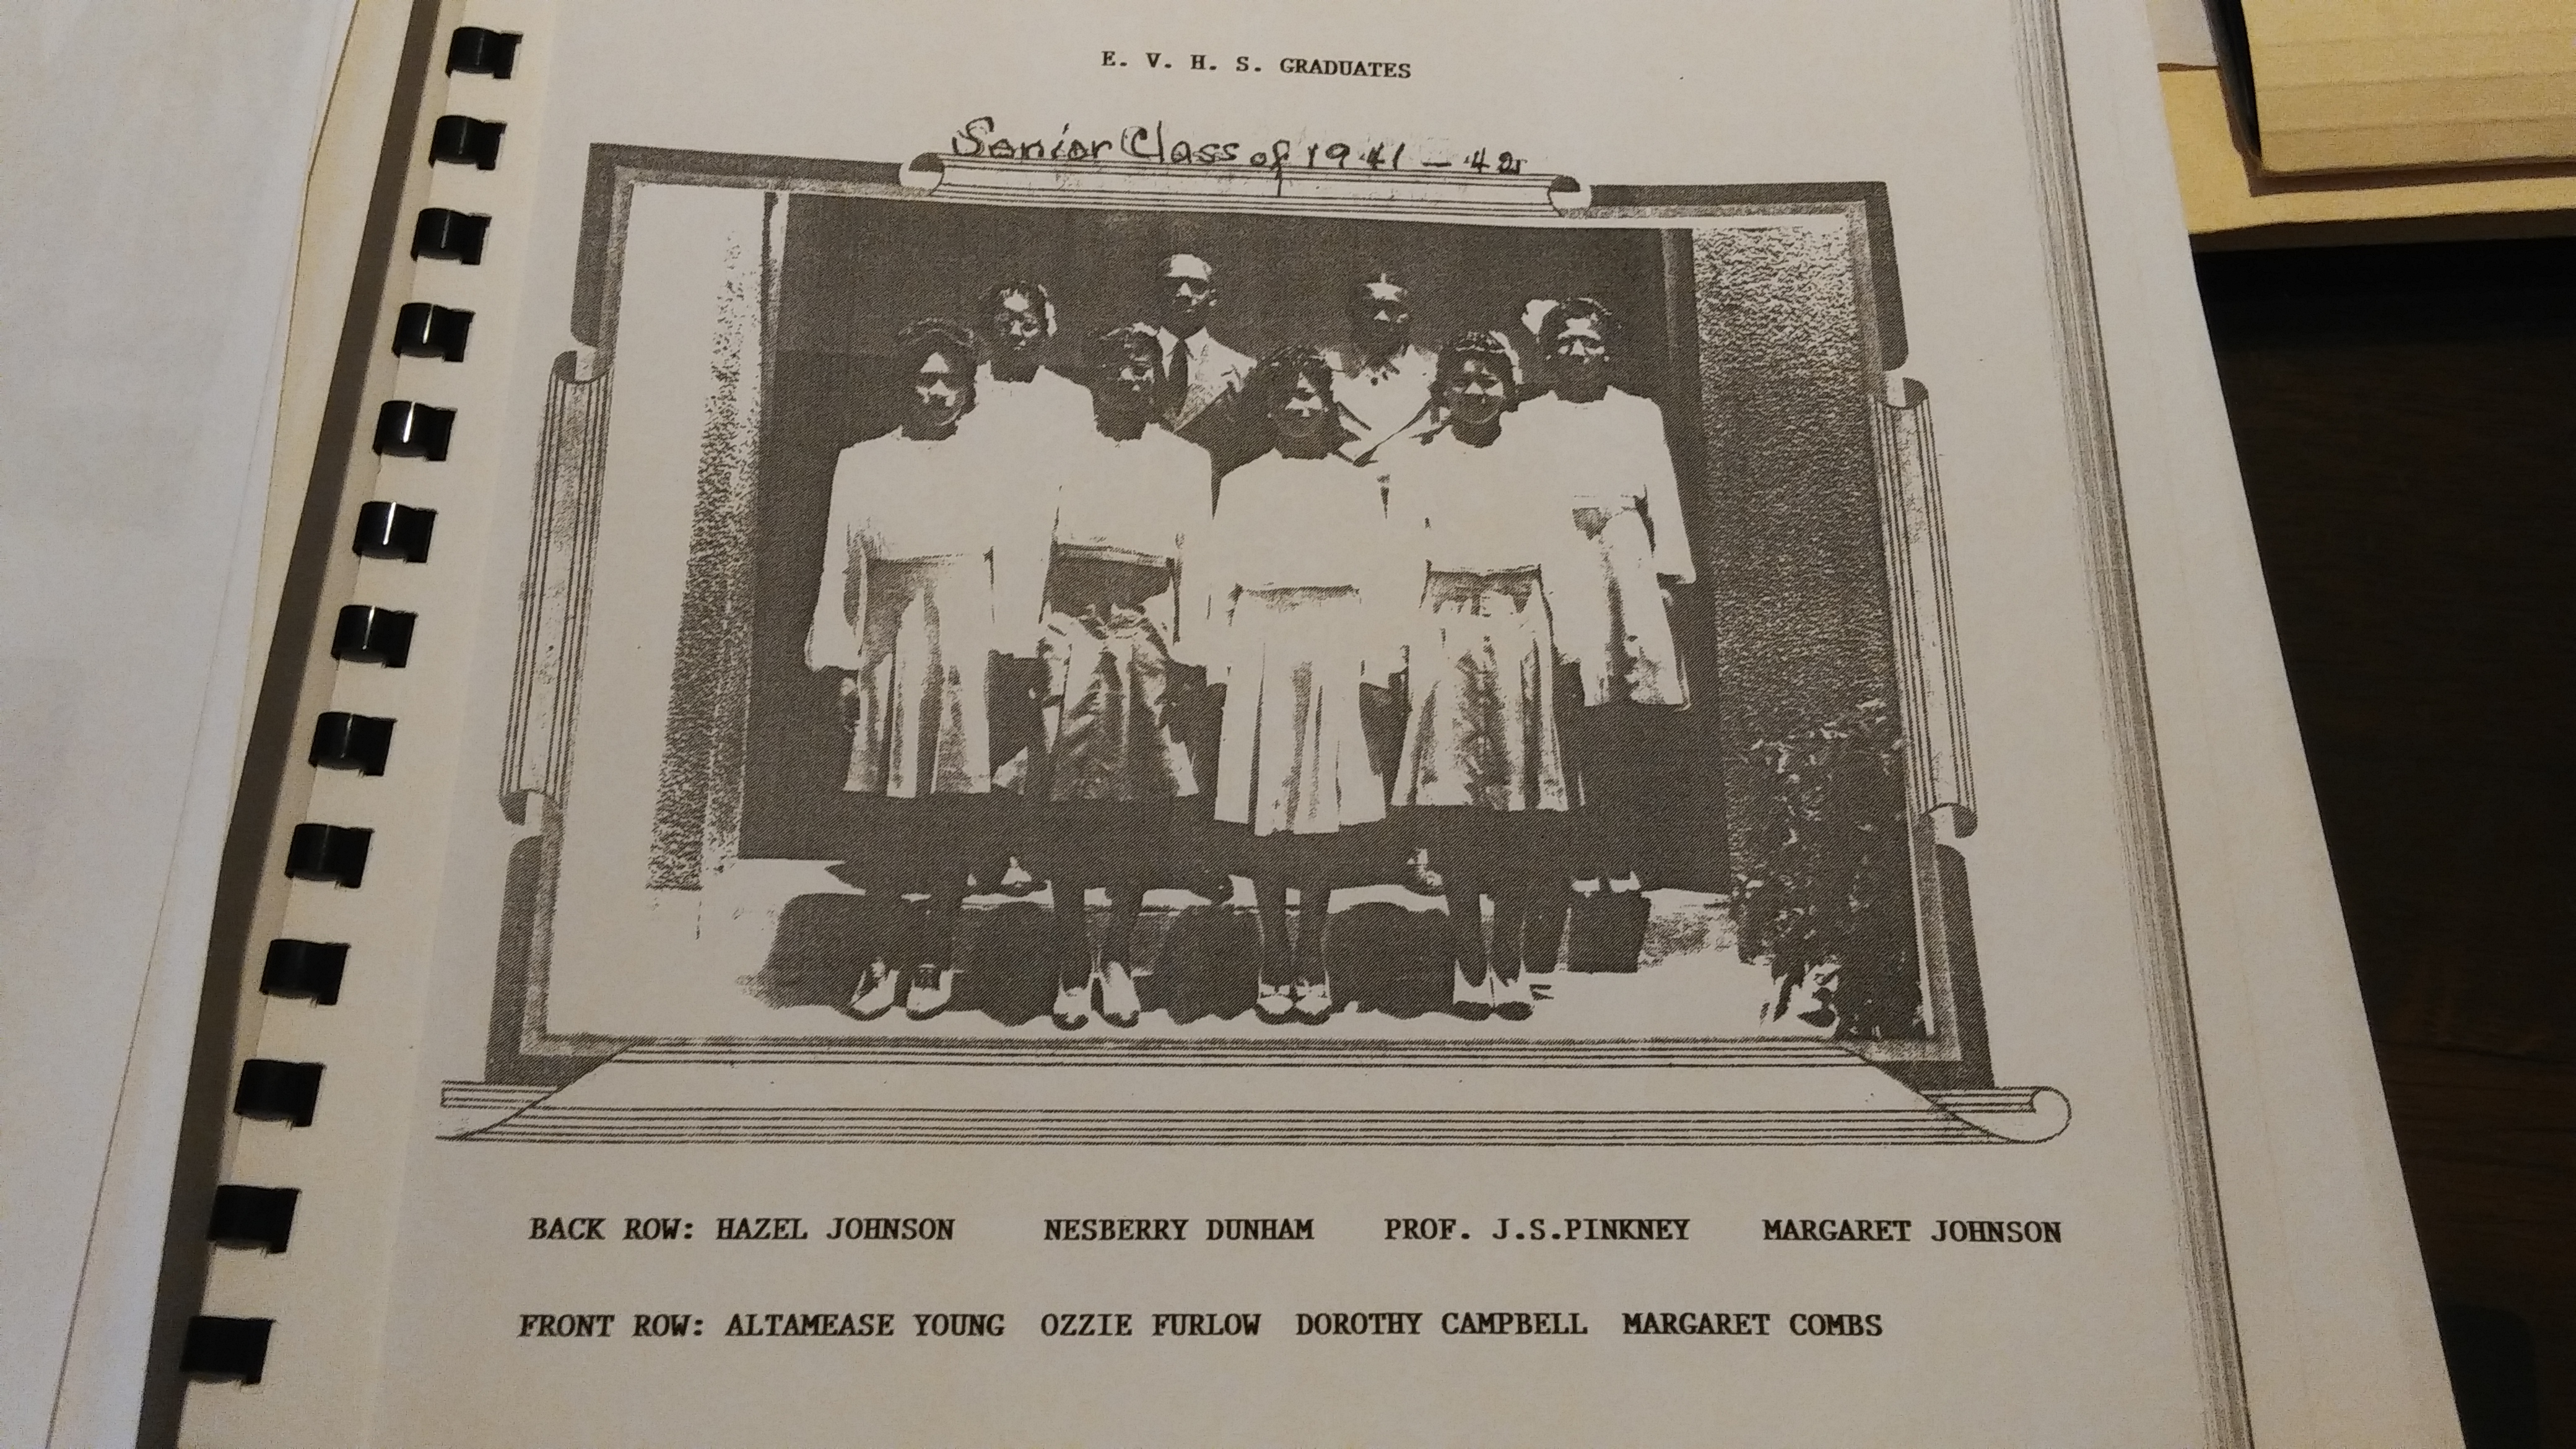 Eustis Vocational High School Senior Class of 1941-1942.